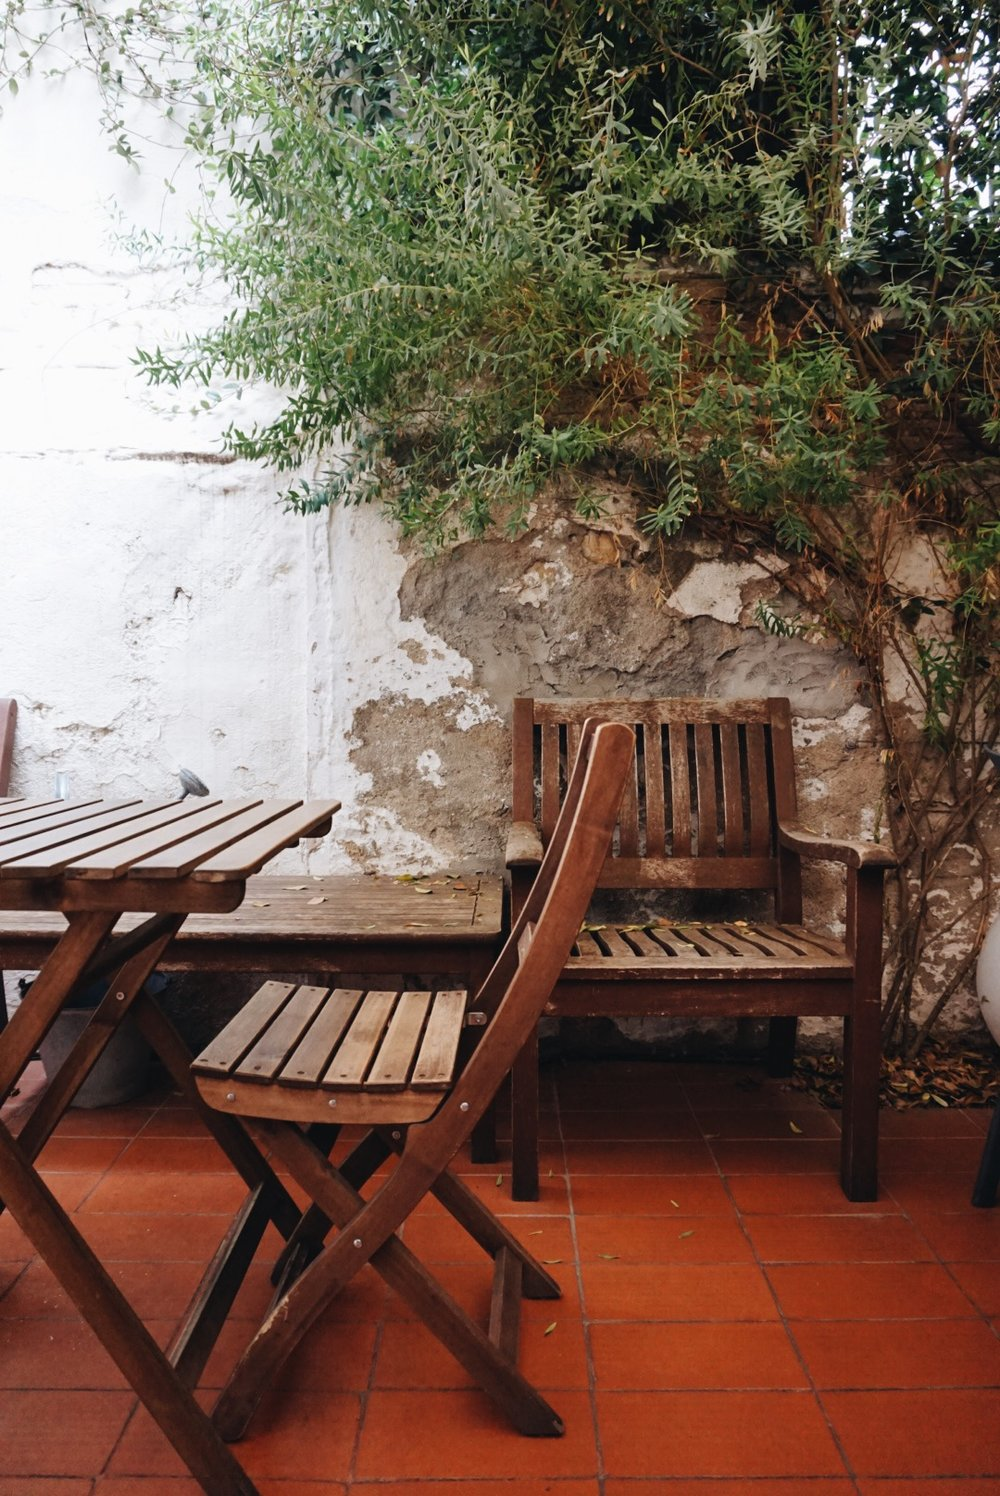 The patio at Mama's Cafe, Barcelona